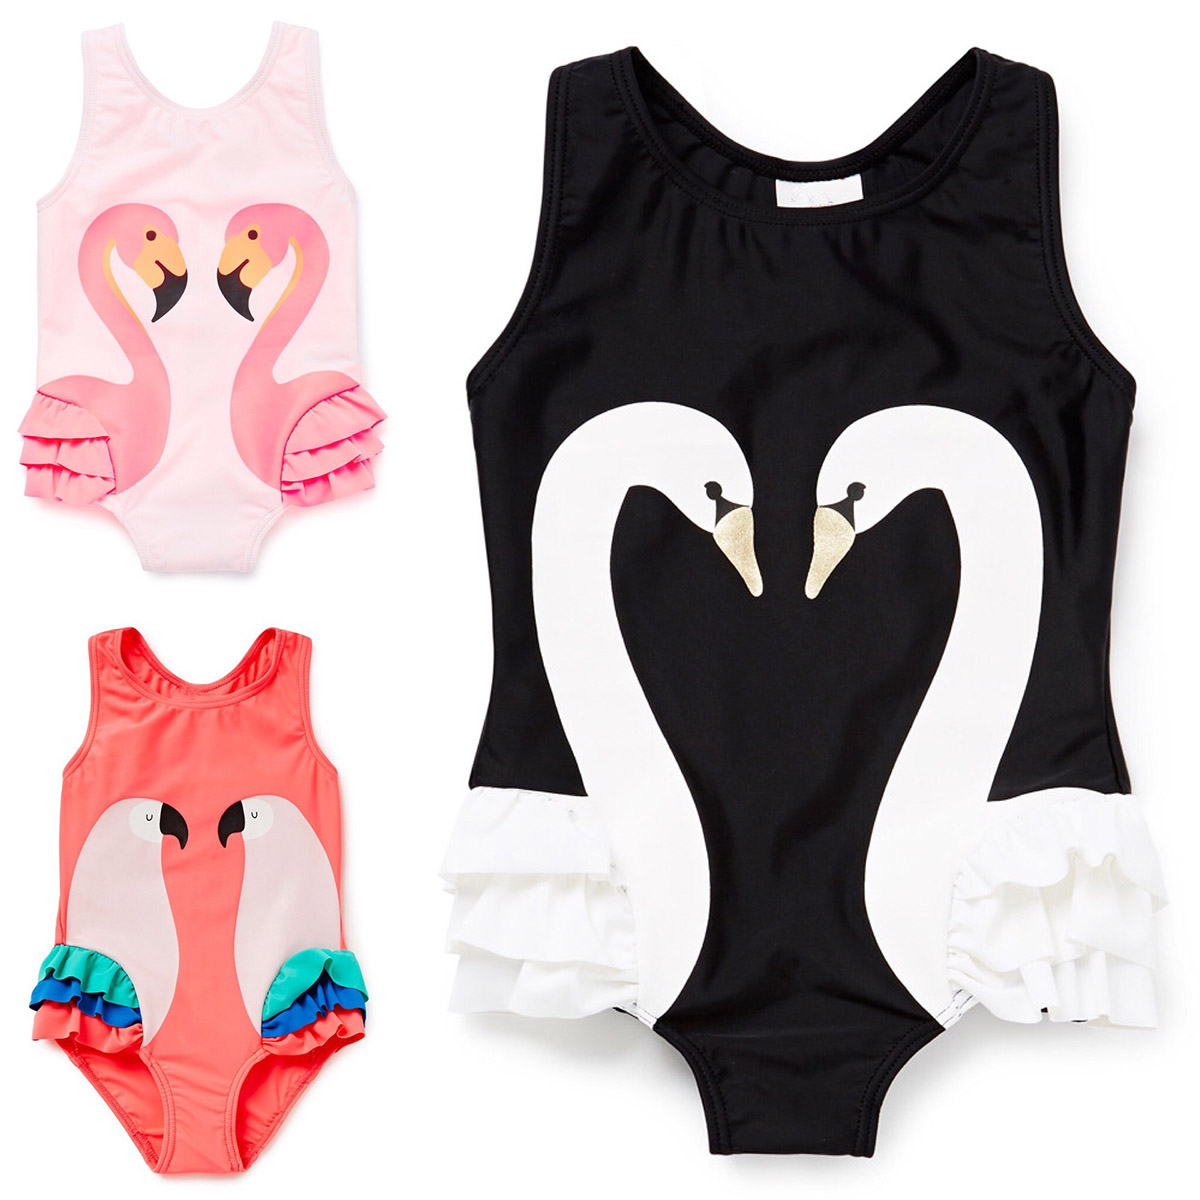 colorful cute kids swimmingsuit Girl one-piece swimsuit summer beach lovely swim wear cartoon sweet comfortable kids Bikini